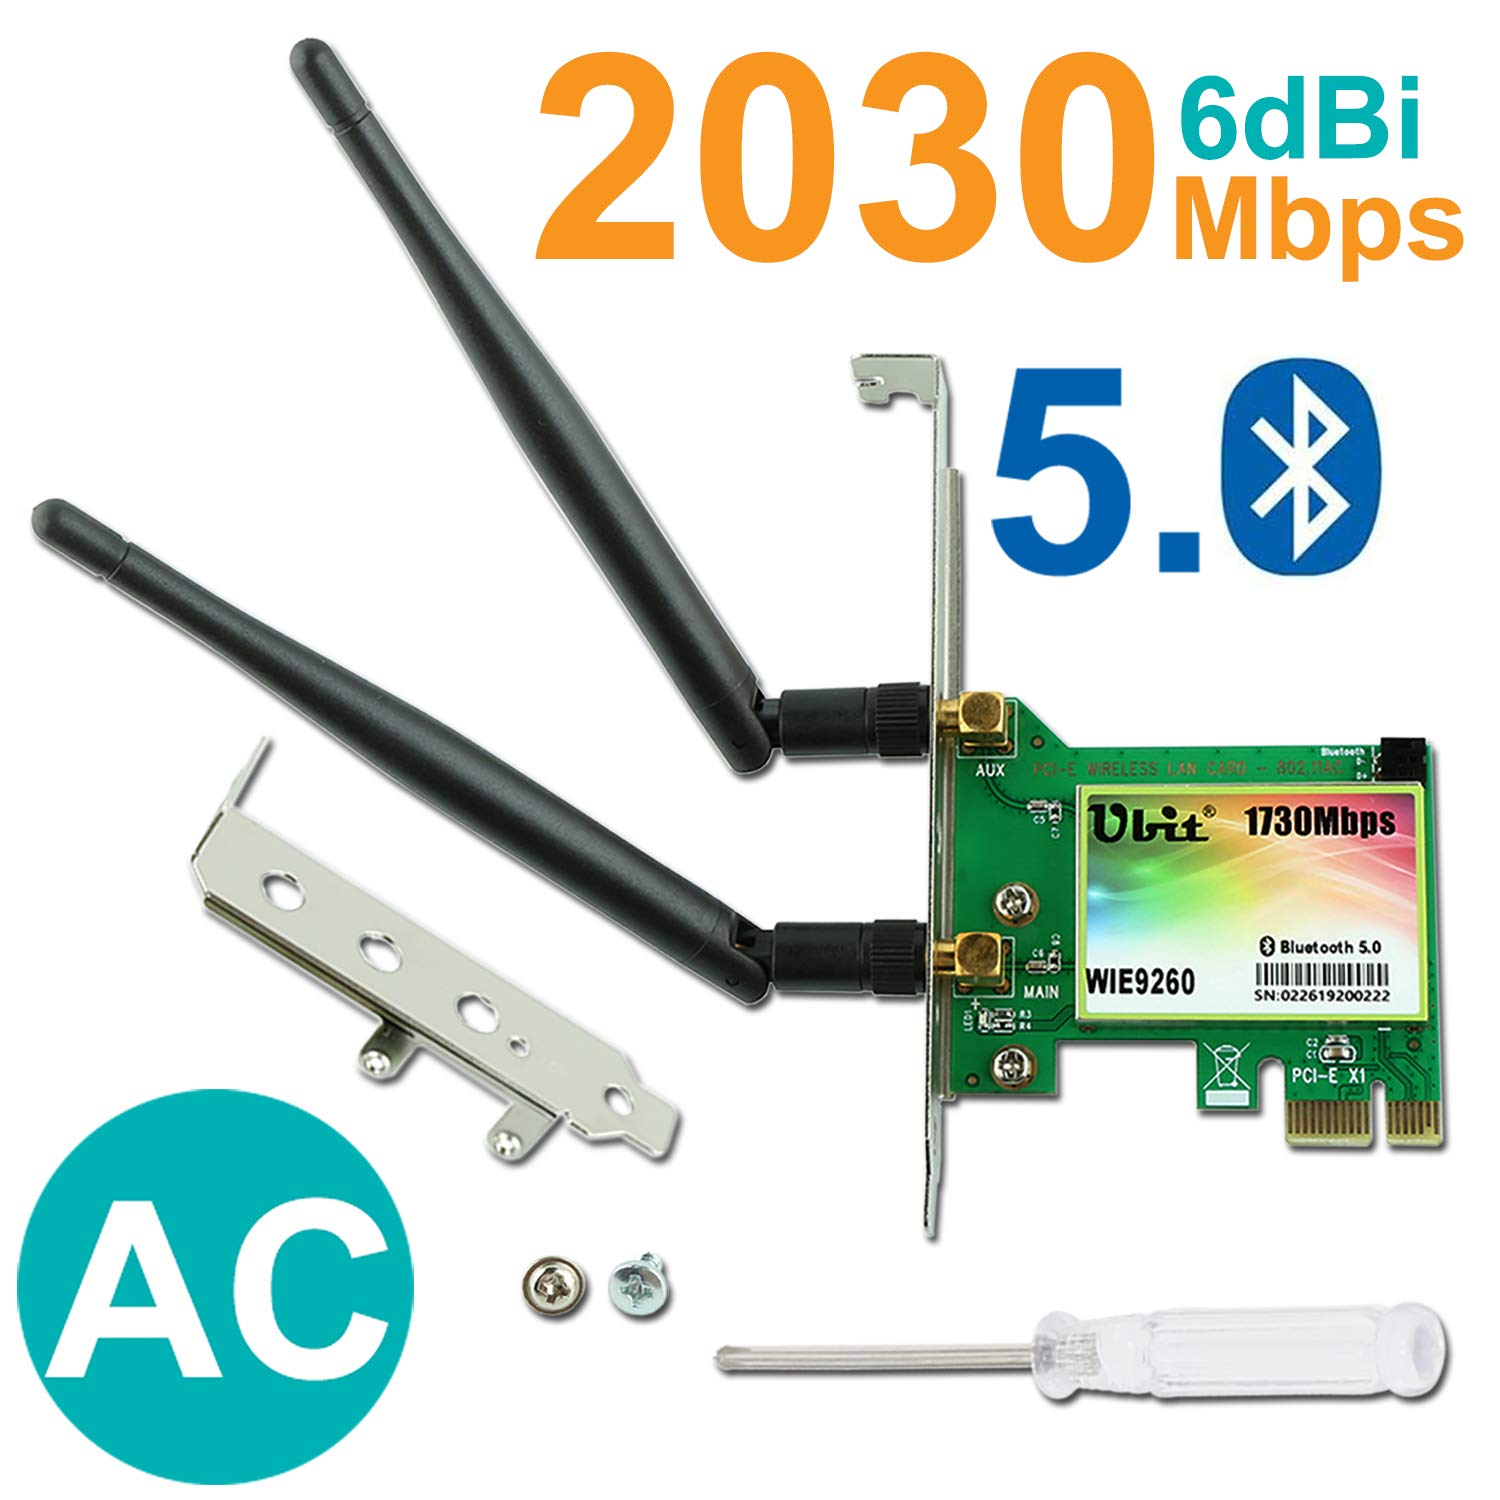 Gigabit WiFi Card, Wireless-AC 9260 Dual Band 2030Mbps(5G-1730Mbps / 2.4G-300Mbps), PCIe WiFi Card, Bluetooth 5.0 Wireless Network Card, PCI-E ...